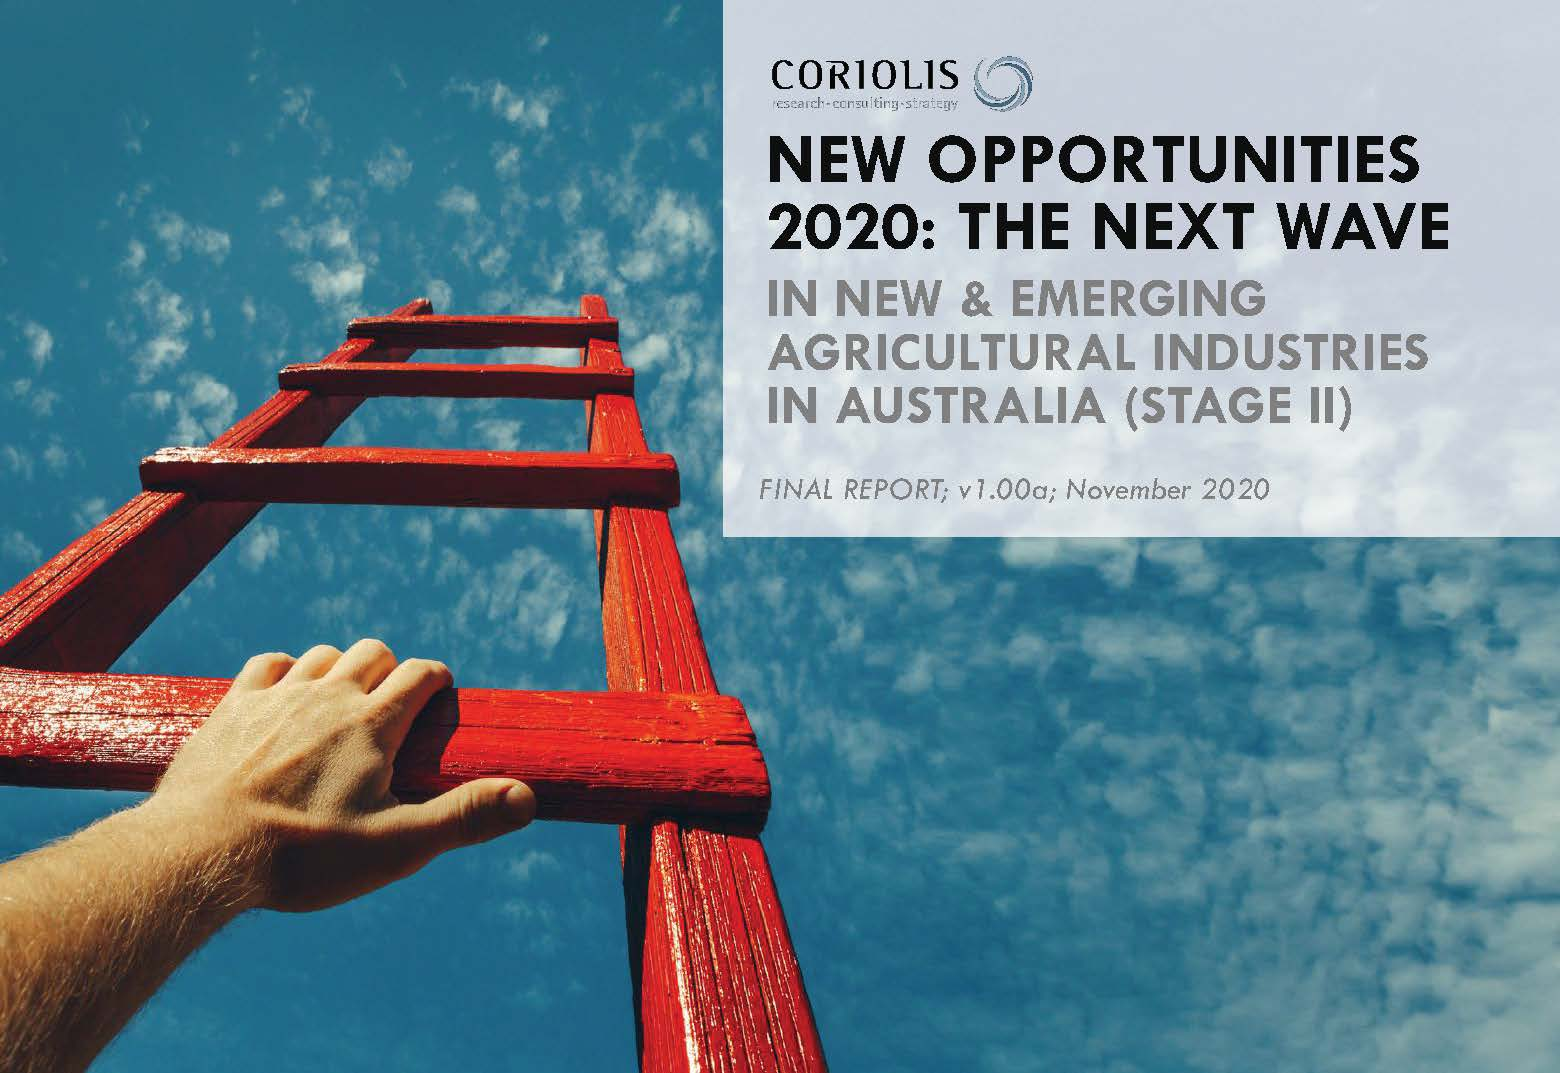 The next wave of emerging industry opportunities 2020 - Stage II - image